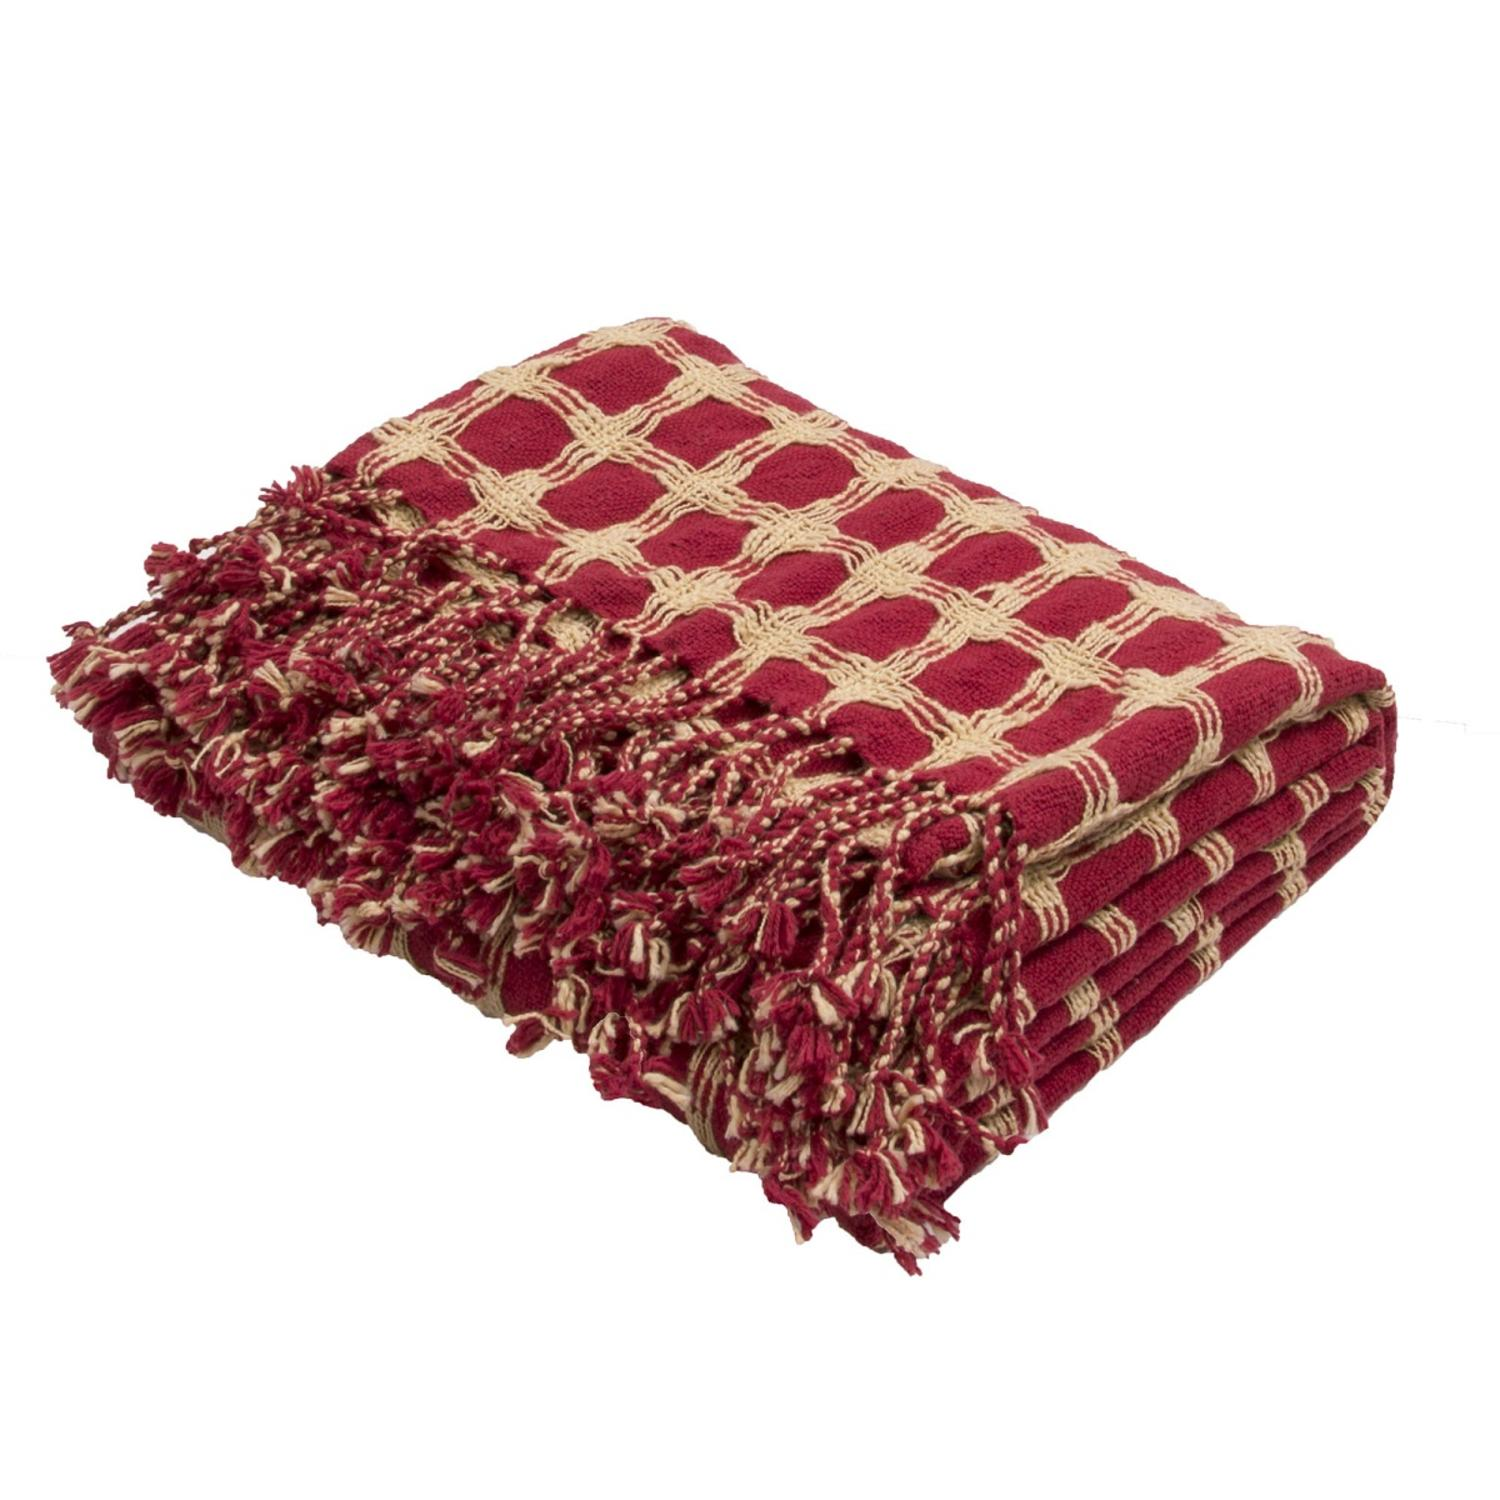 "51"" x 71"" Red and Cream Fringed Cotton Throw Blanket"